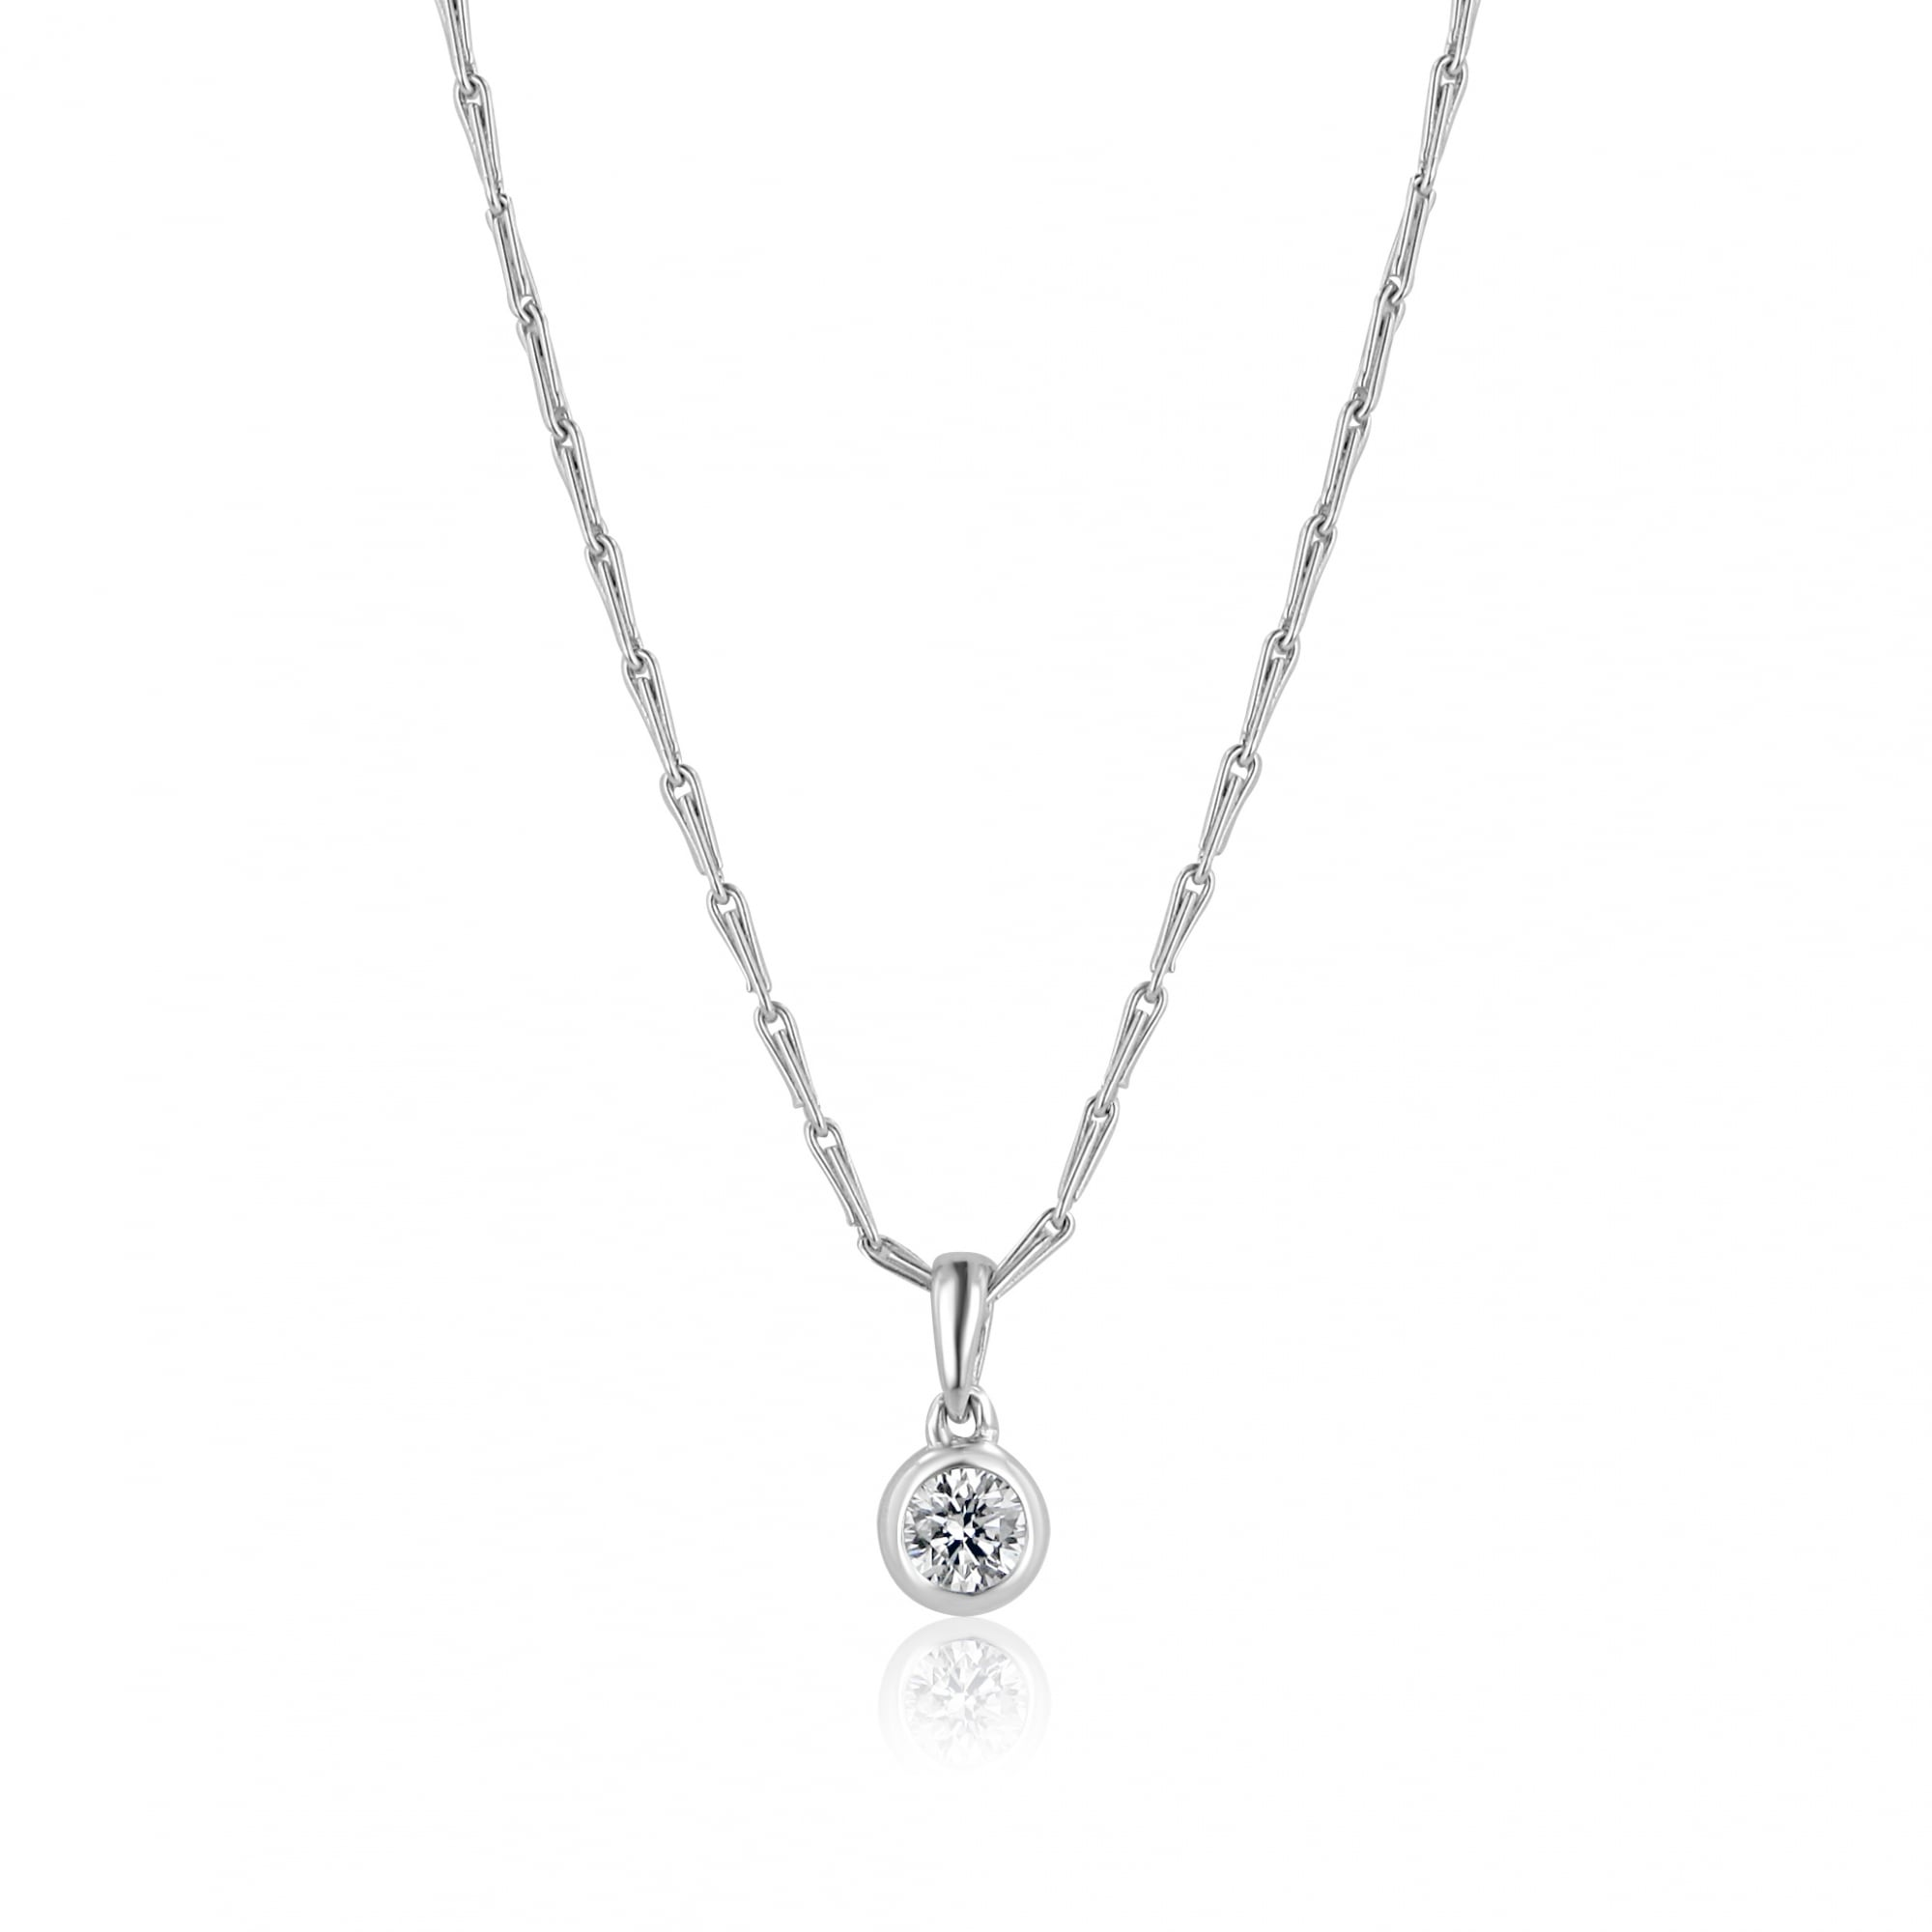 84ce00ae07d1c6 Delicate White Gold Solitaire Diamond Pendant - Womens from Avanti of  Ashbourne Ltd UK